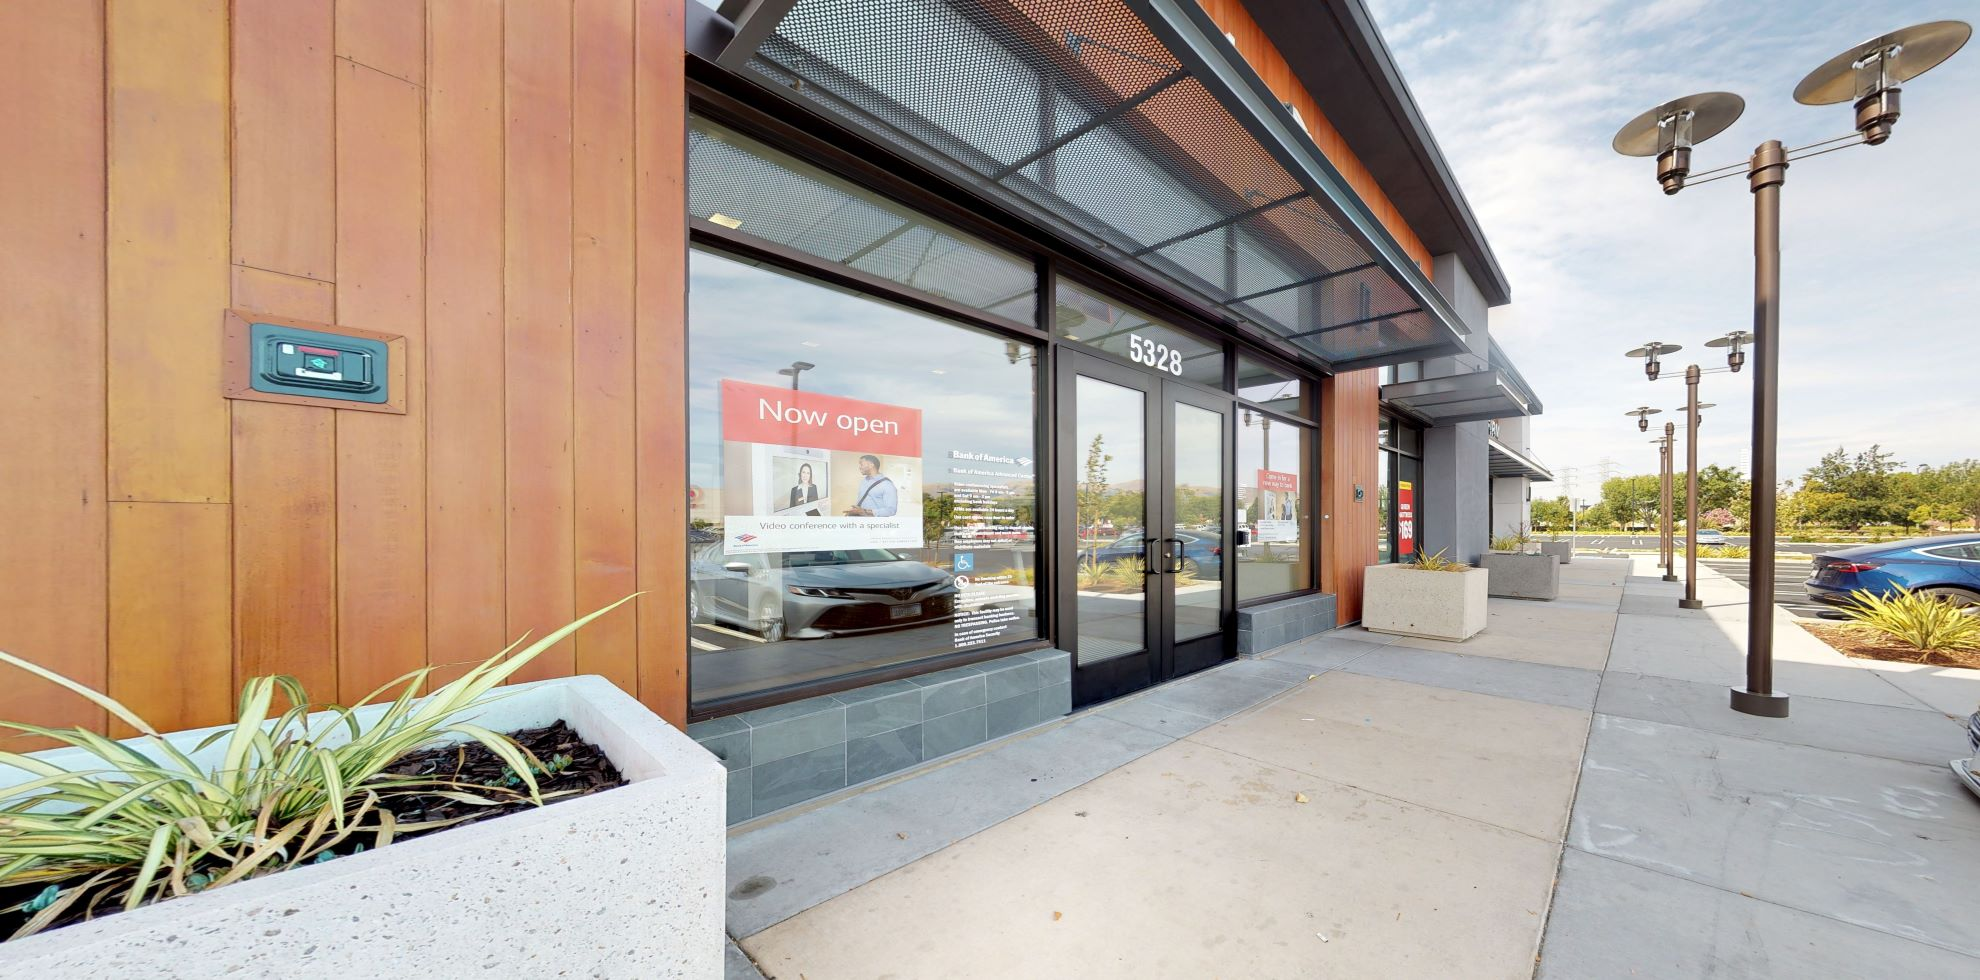 Bank of America Advanced Center with walk-up ATM | 5328 Curie St, Fremont, CA 94538